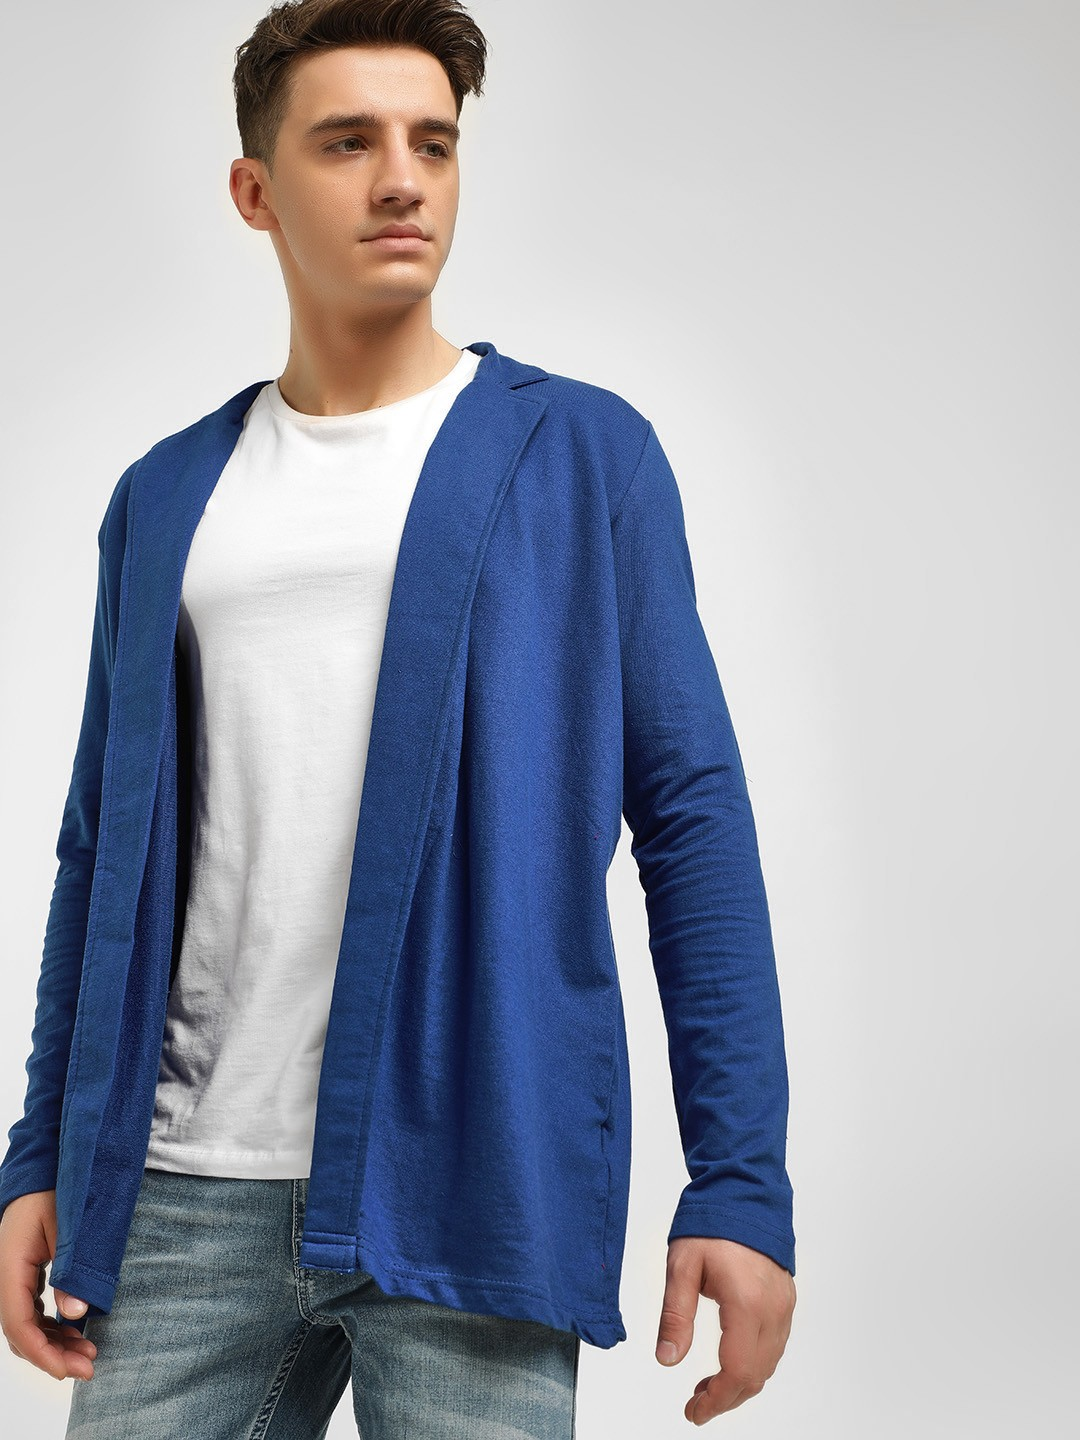 Spring Break Blue Notched Lapel Collared Cardigan 1